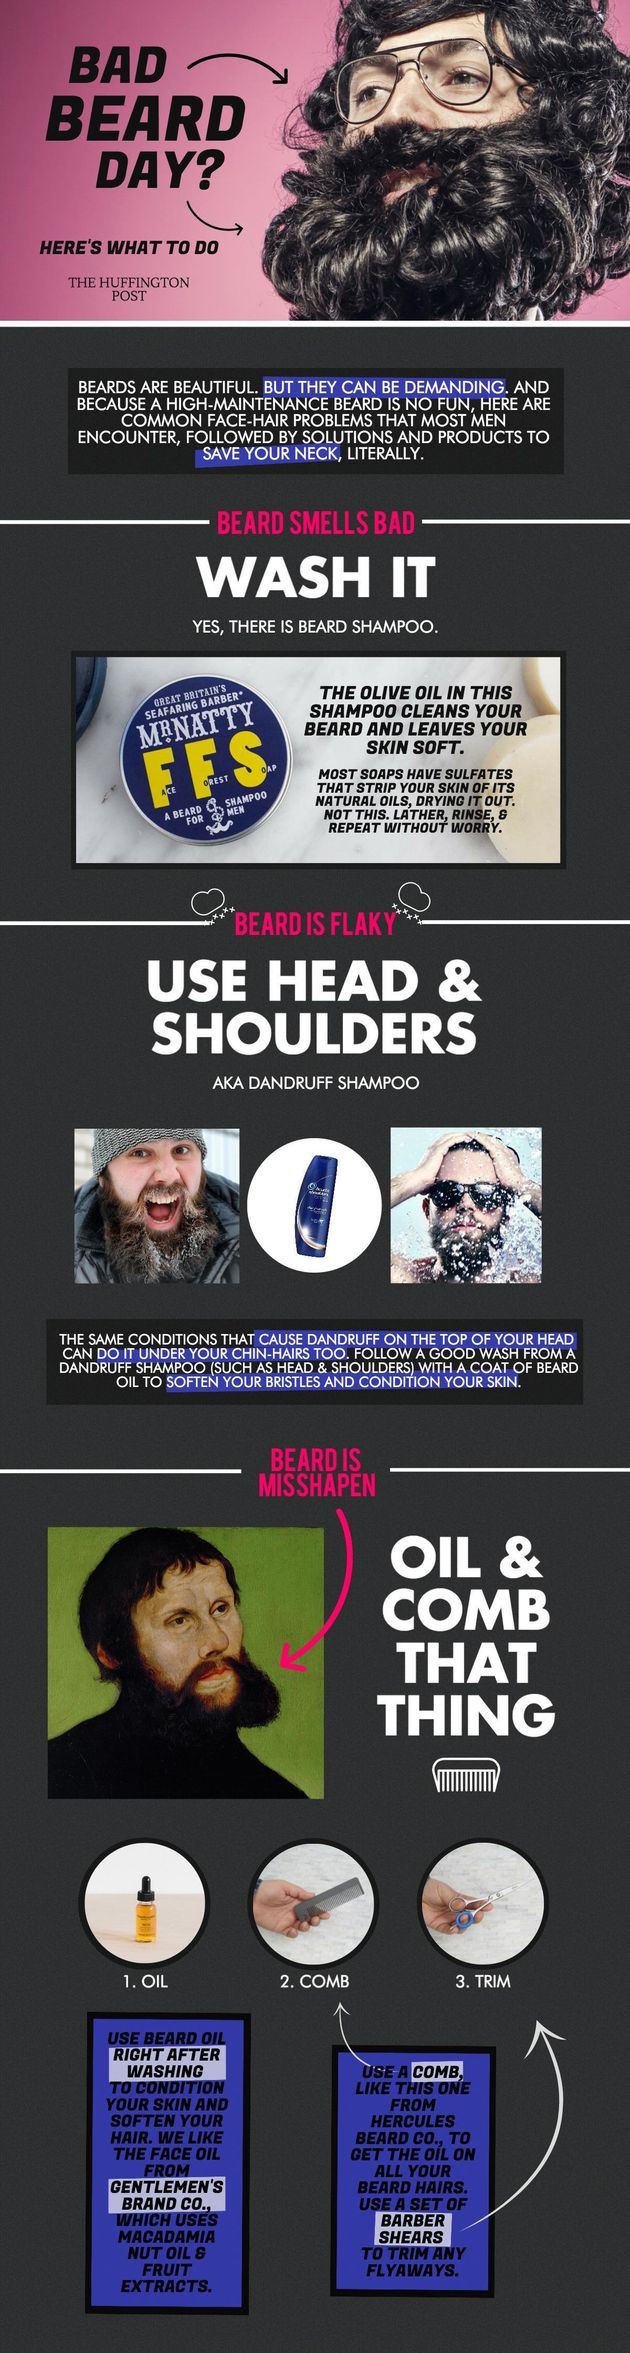 Bad Beard Days Happen, So Here's How To Handle